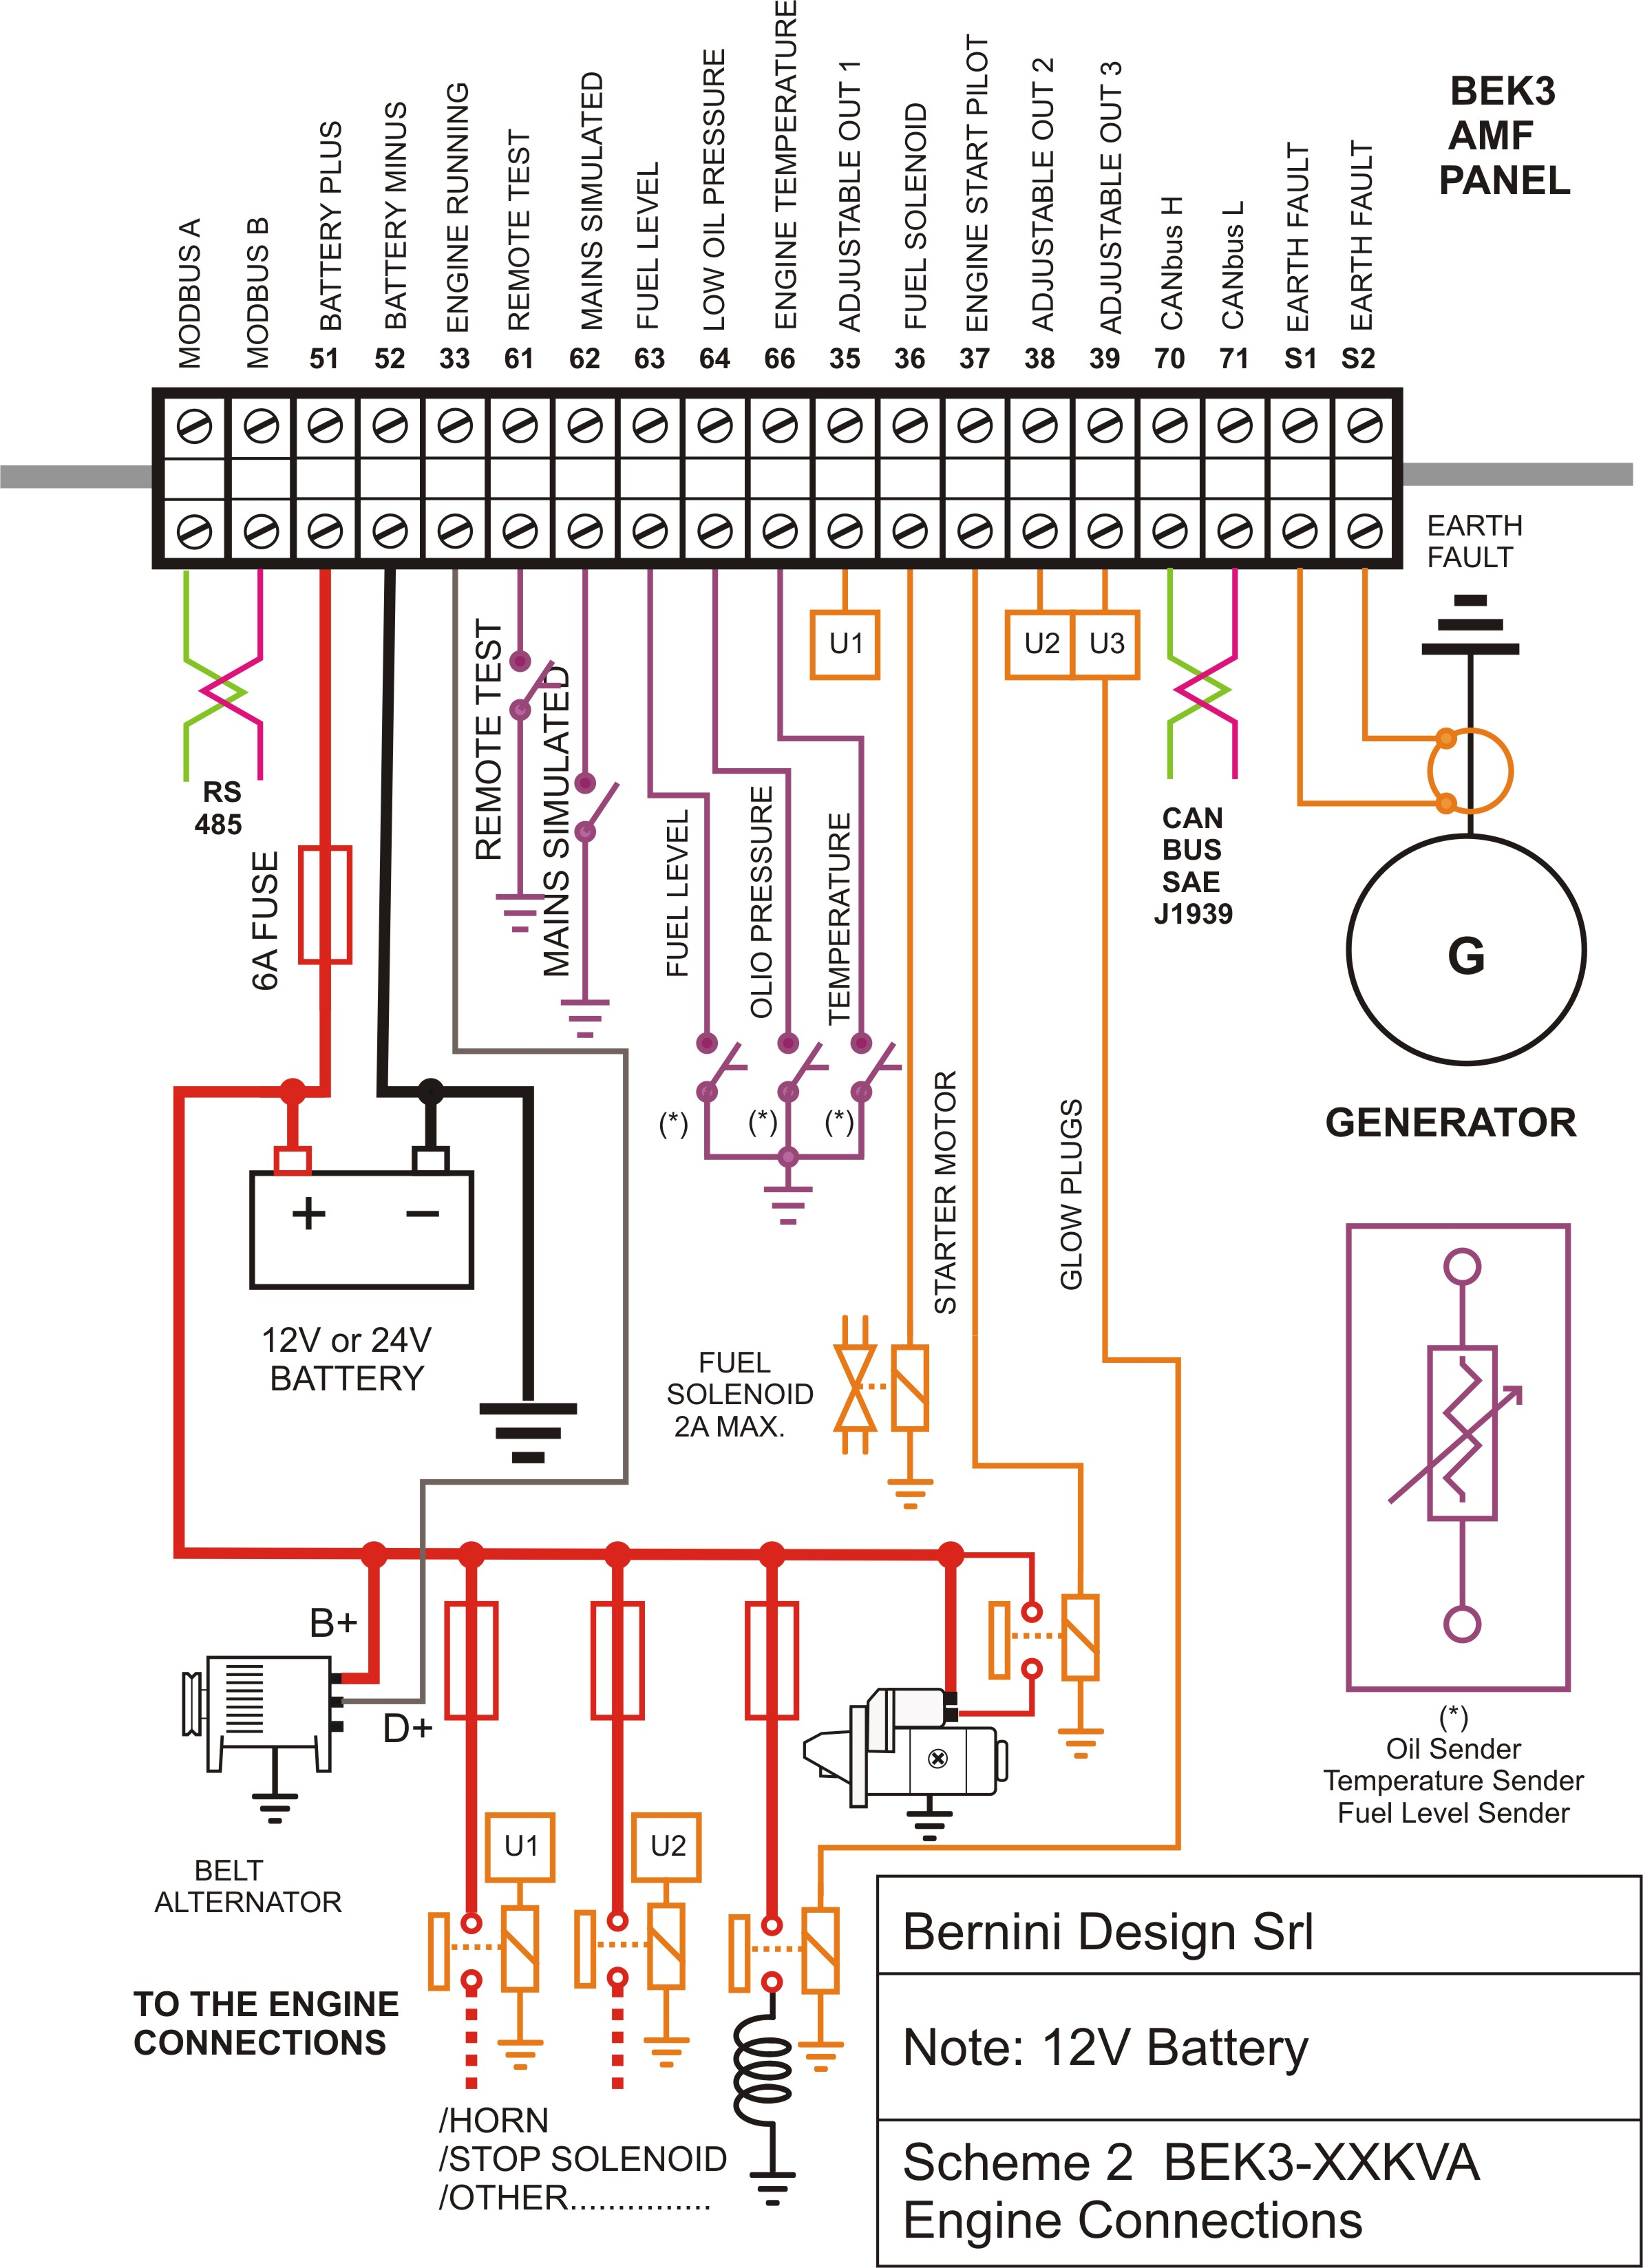 Diesel Generator Control Panel Wiring Diagram Engine Connections?resized665%2C9186ssld1 caterpillar generator schematic diagram efcaviation com Caterpillar SR4B Model Specification Sheet at bayanpartner.co